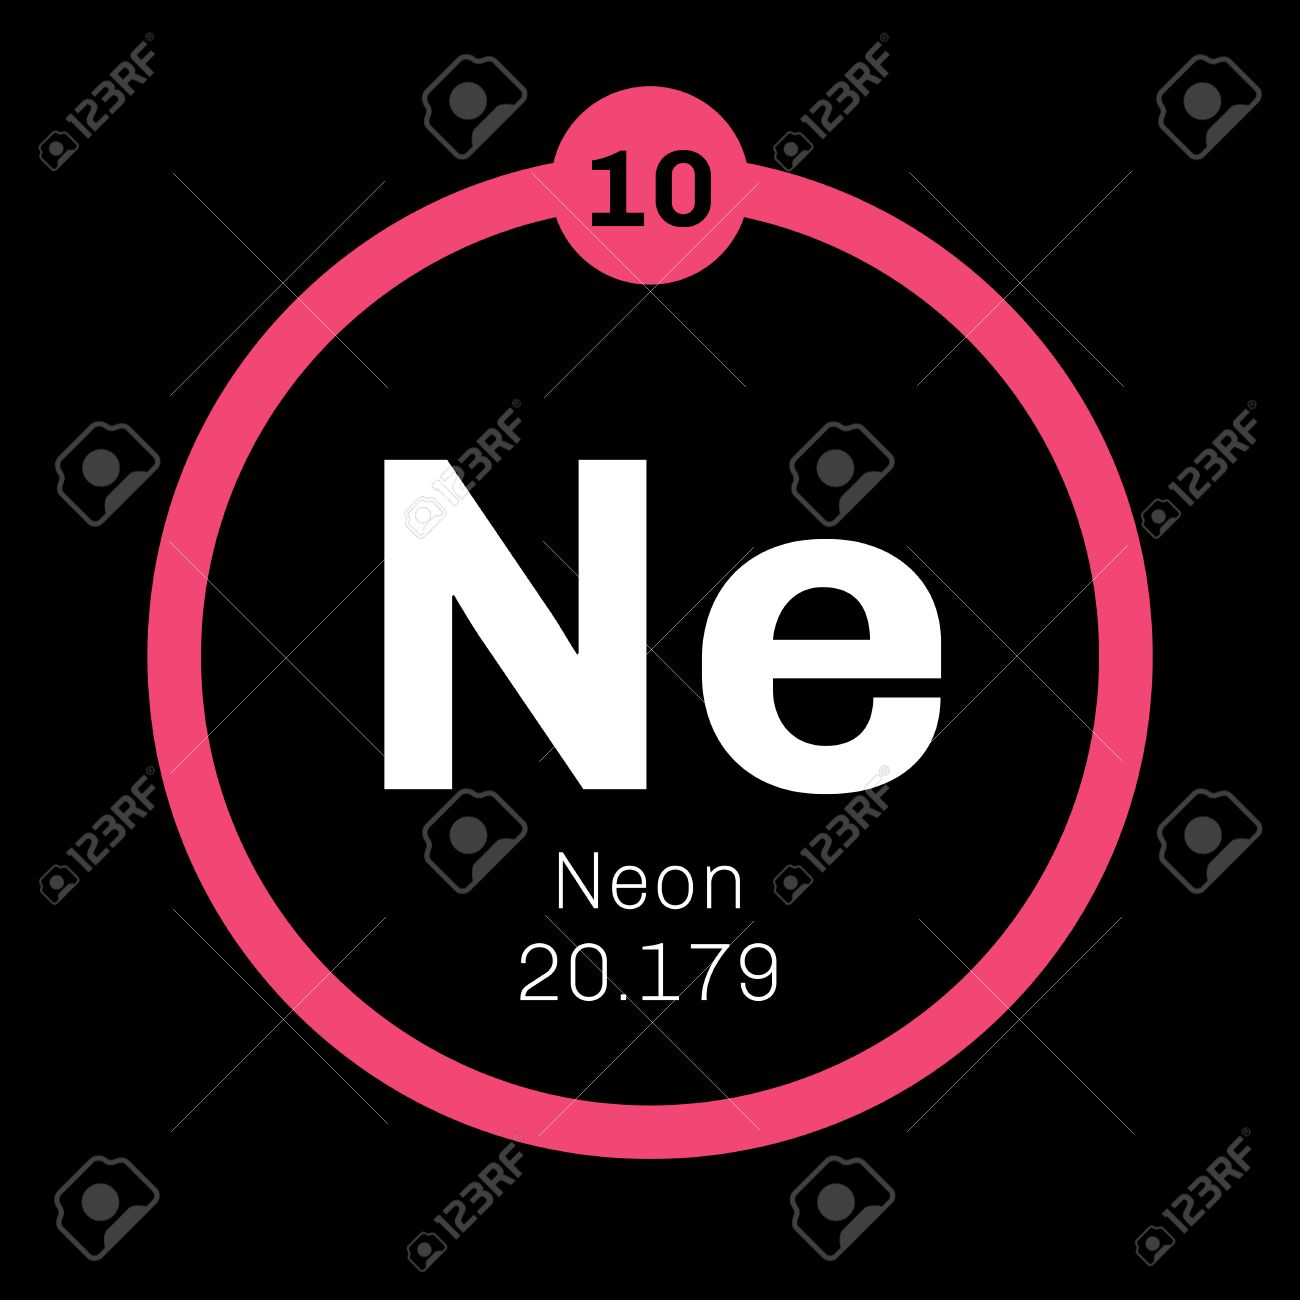 Neon chemical element belongs to noble gases group of the neon chemical element belongs to noble gases group of the periodic table colorless urtaz Choice Image